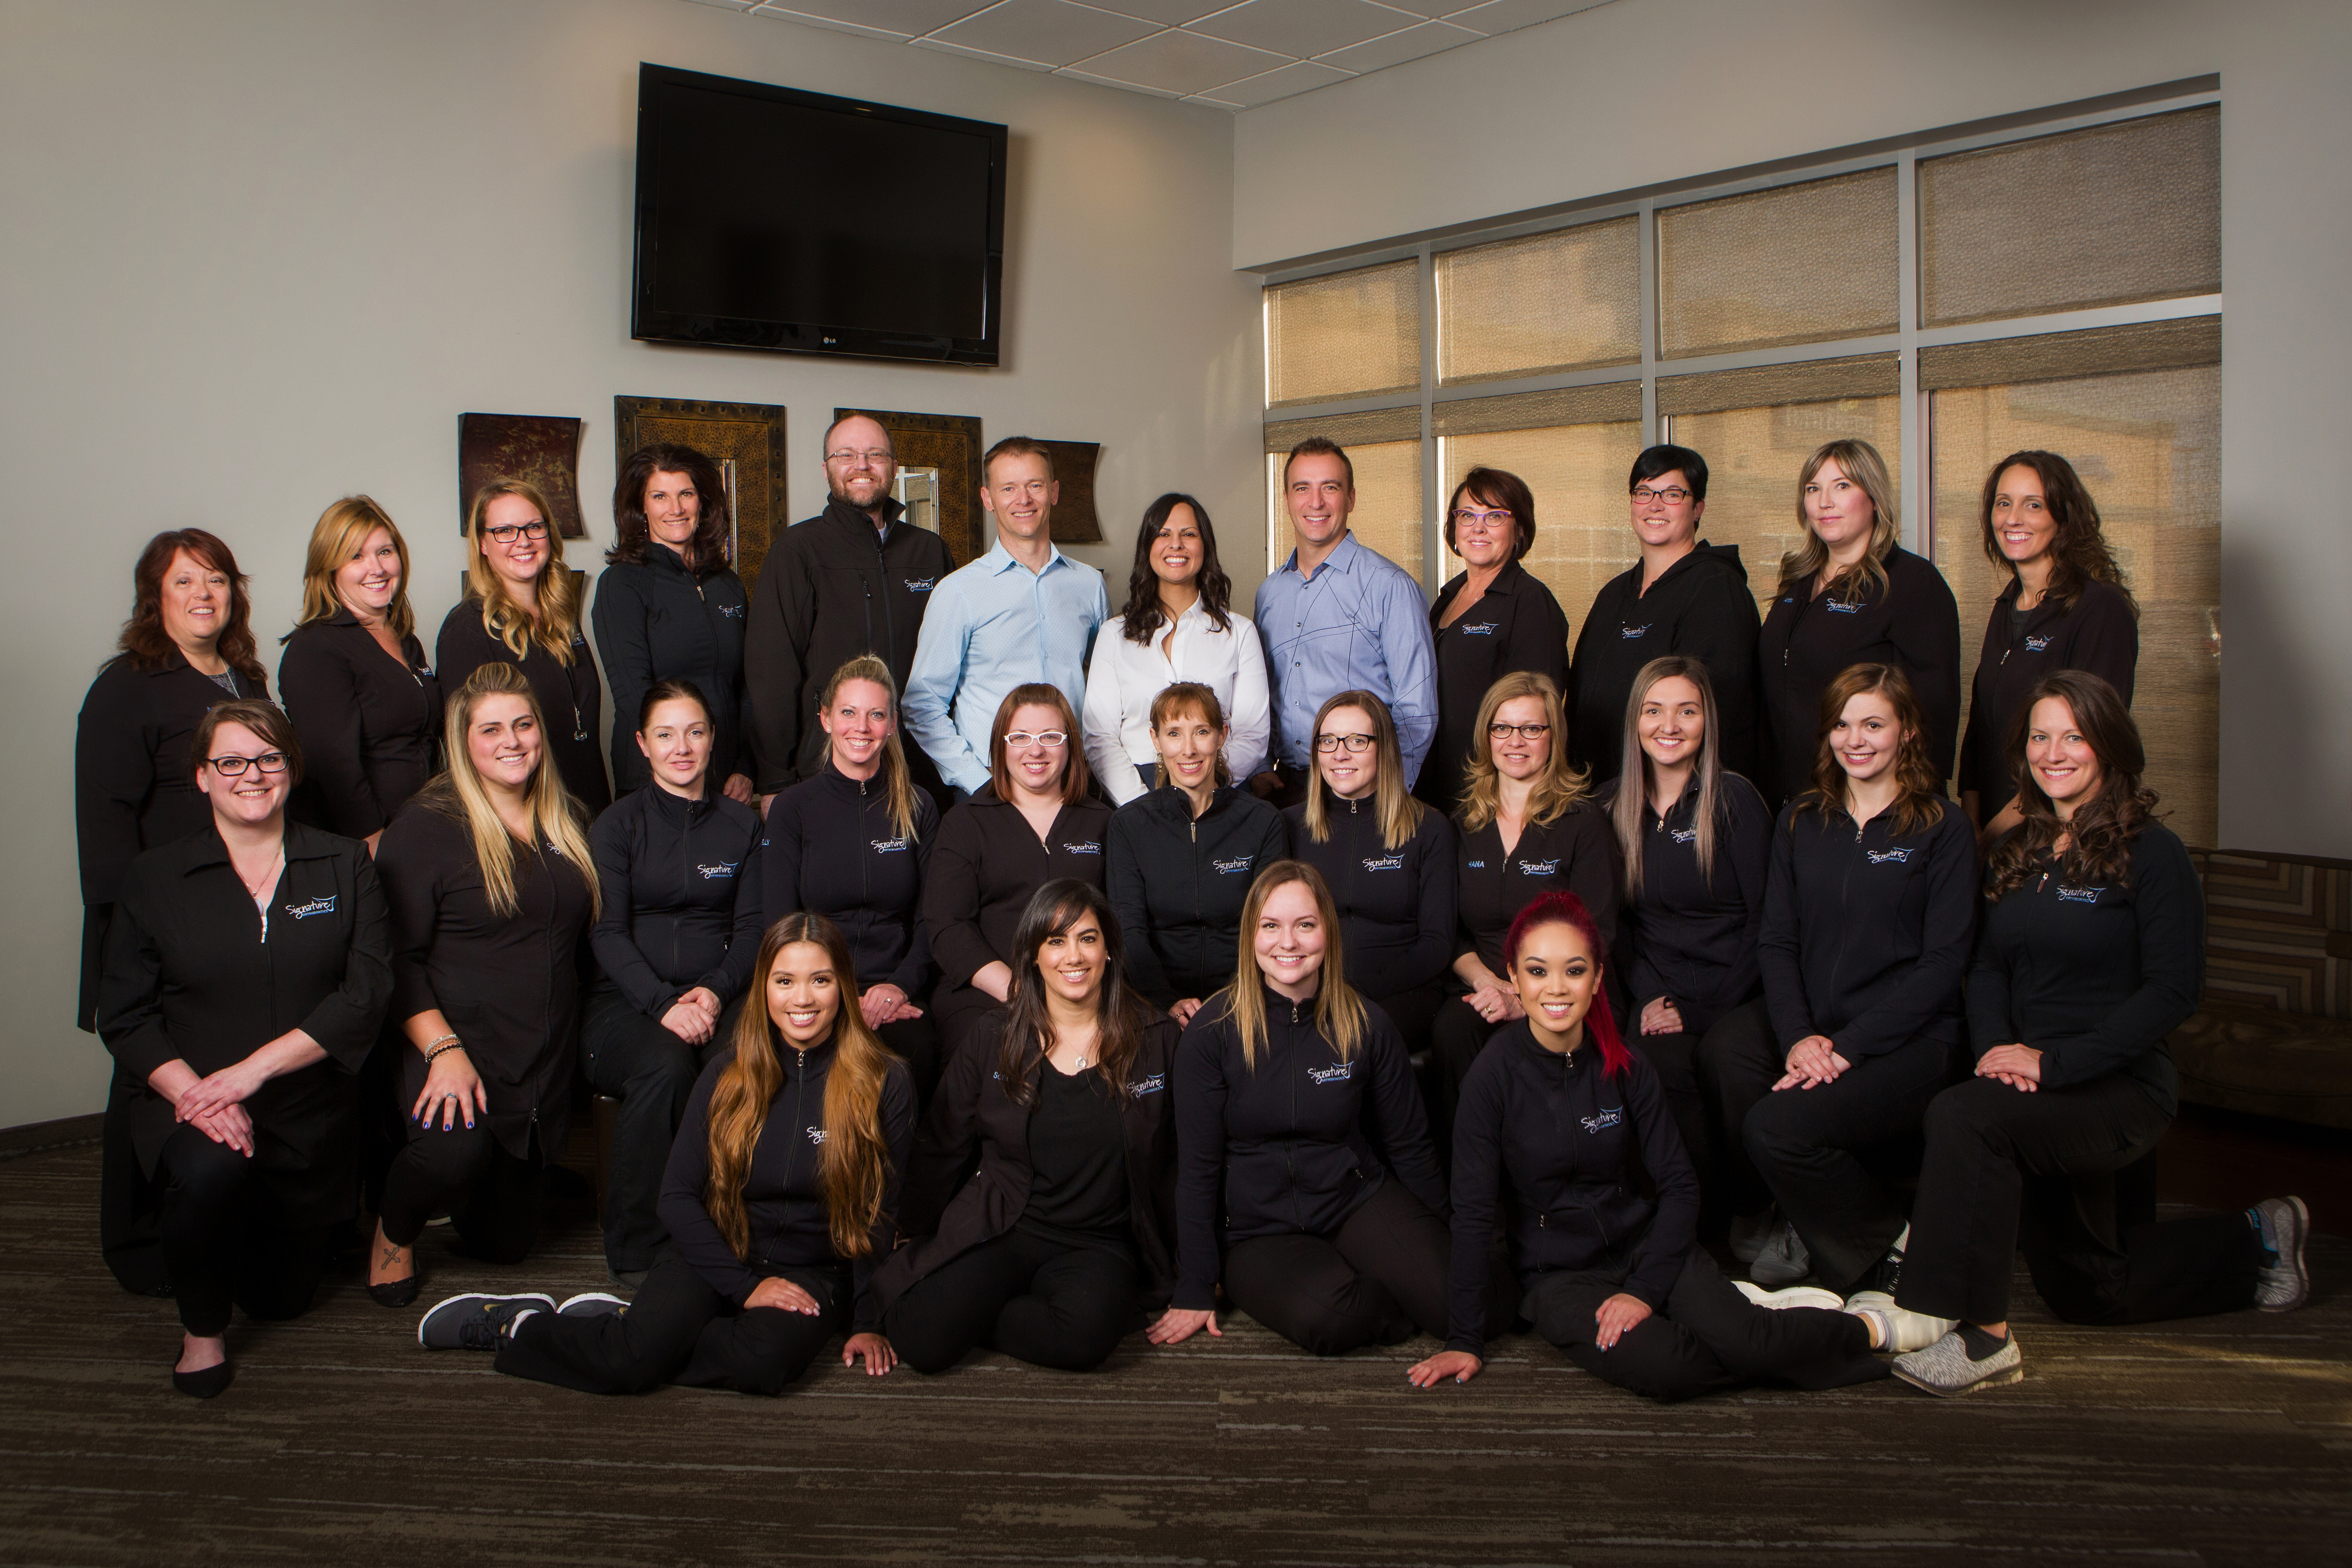 Large team of staff at orthodondist office